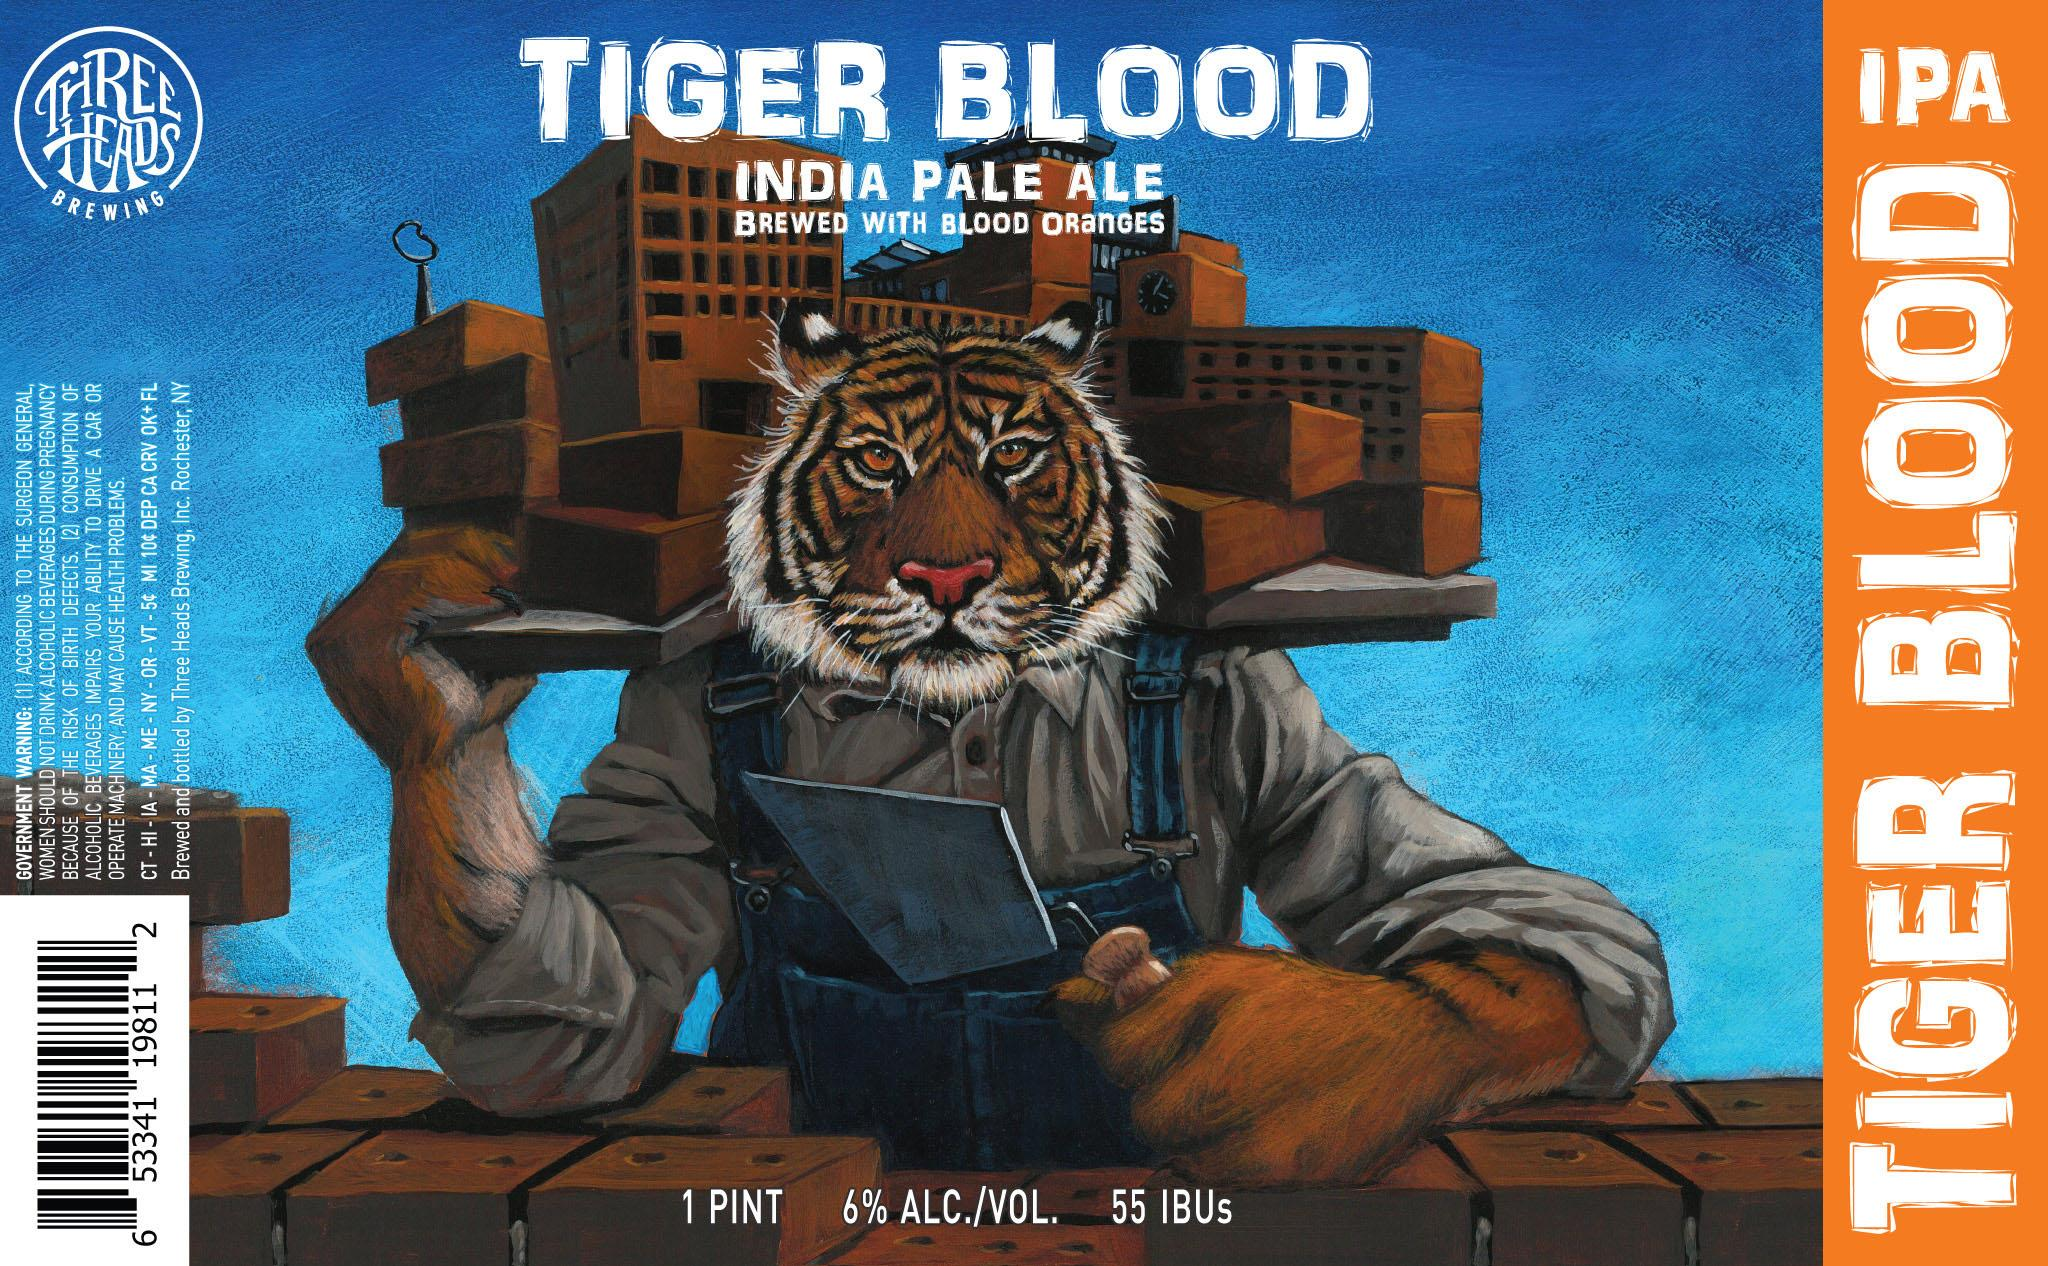 <em>RIT alumnus Al Firlit '99, '01 (illustration,visual arts-all grades) has created artwork for more than 30 of Three HeadsBrewing's labels, including the Tiger Blood IPA. David Moffitt '07 (film andanimation), a graphic designer from Grid Marketing who used Firlit's artwork todesign the label, is also an RIT alumnus.</em>